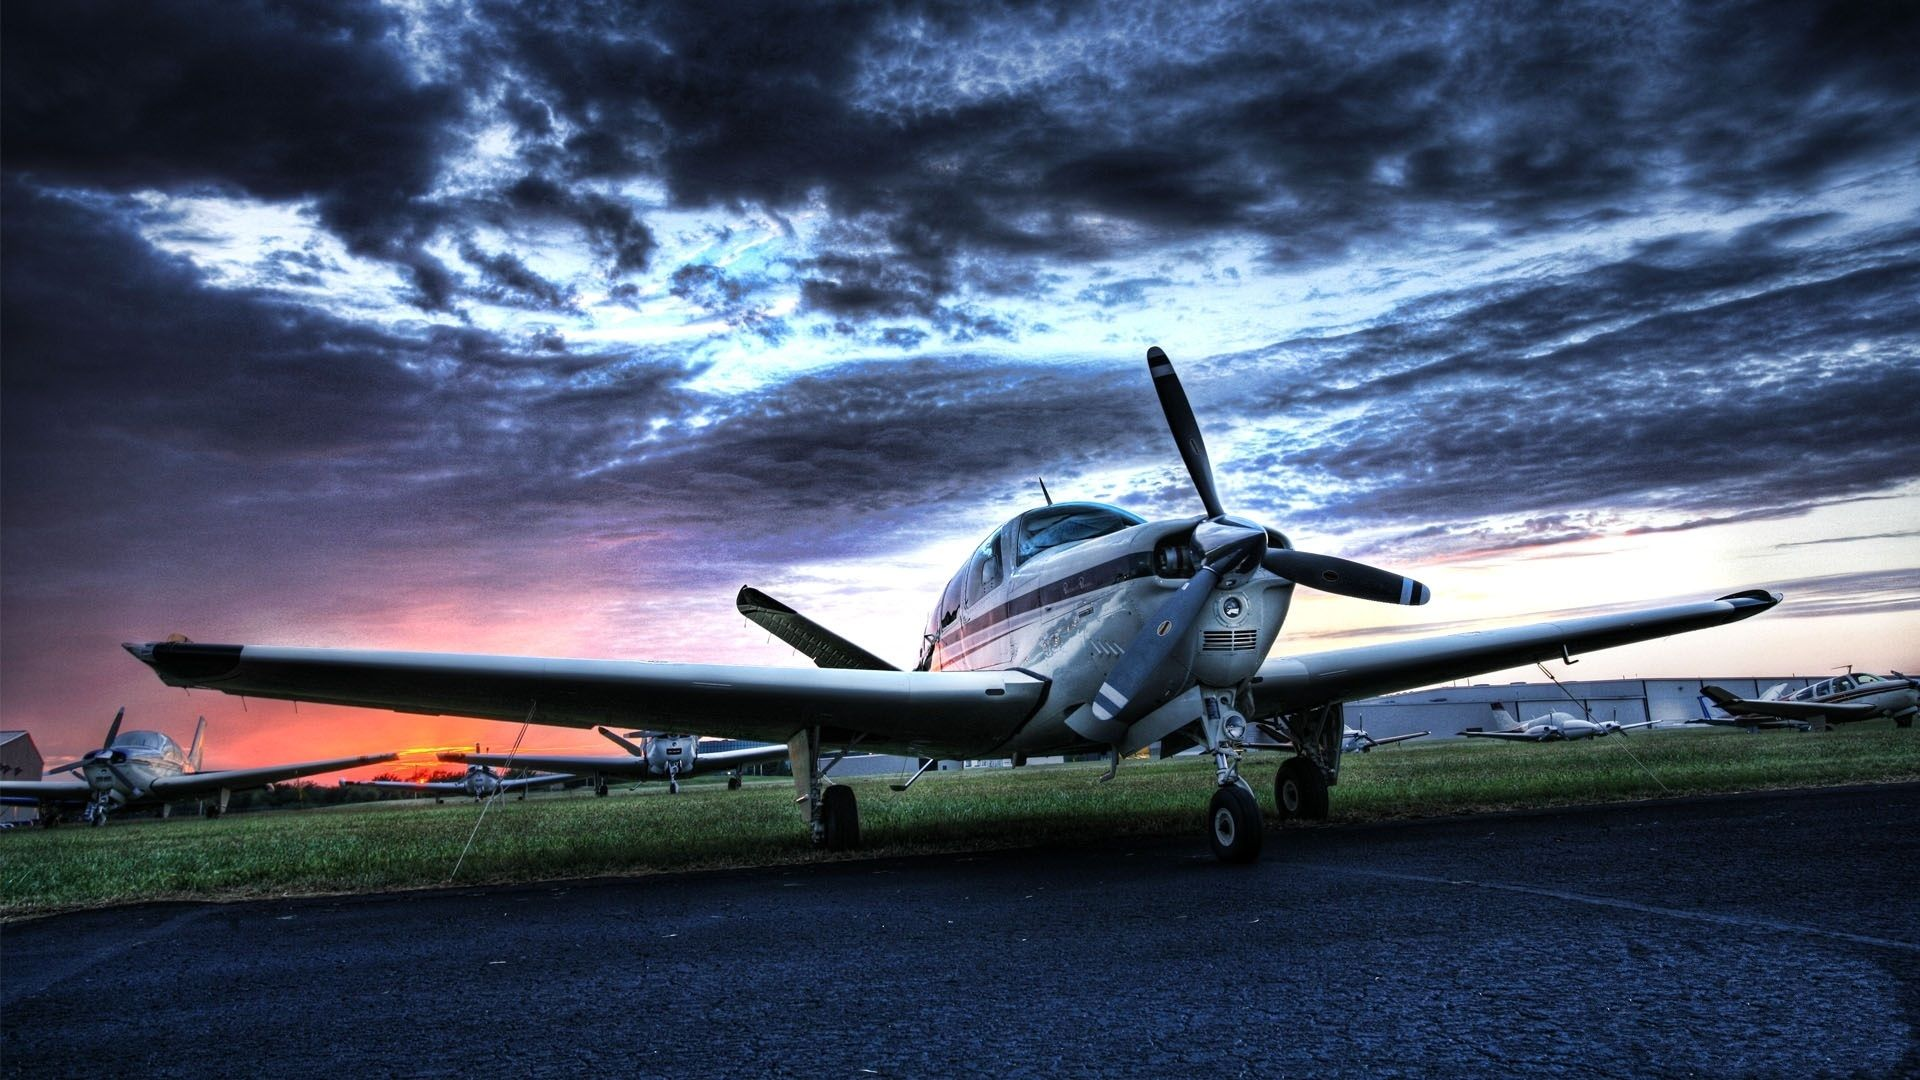 Aviation Wallpaper Collection For Free Download | Самолёт | Pinterest | Aviation, Aircraft and ...